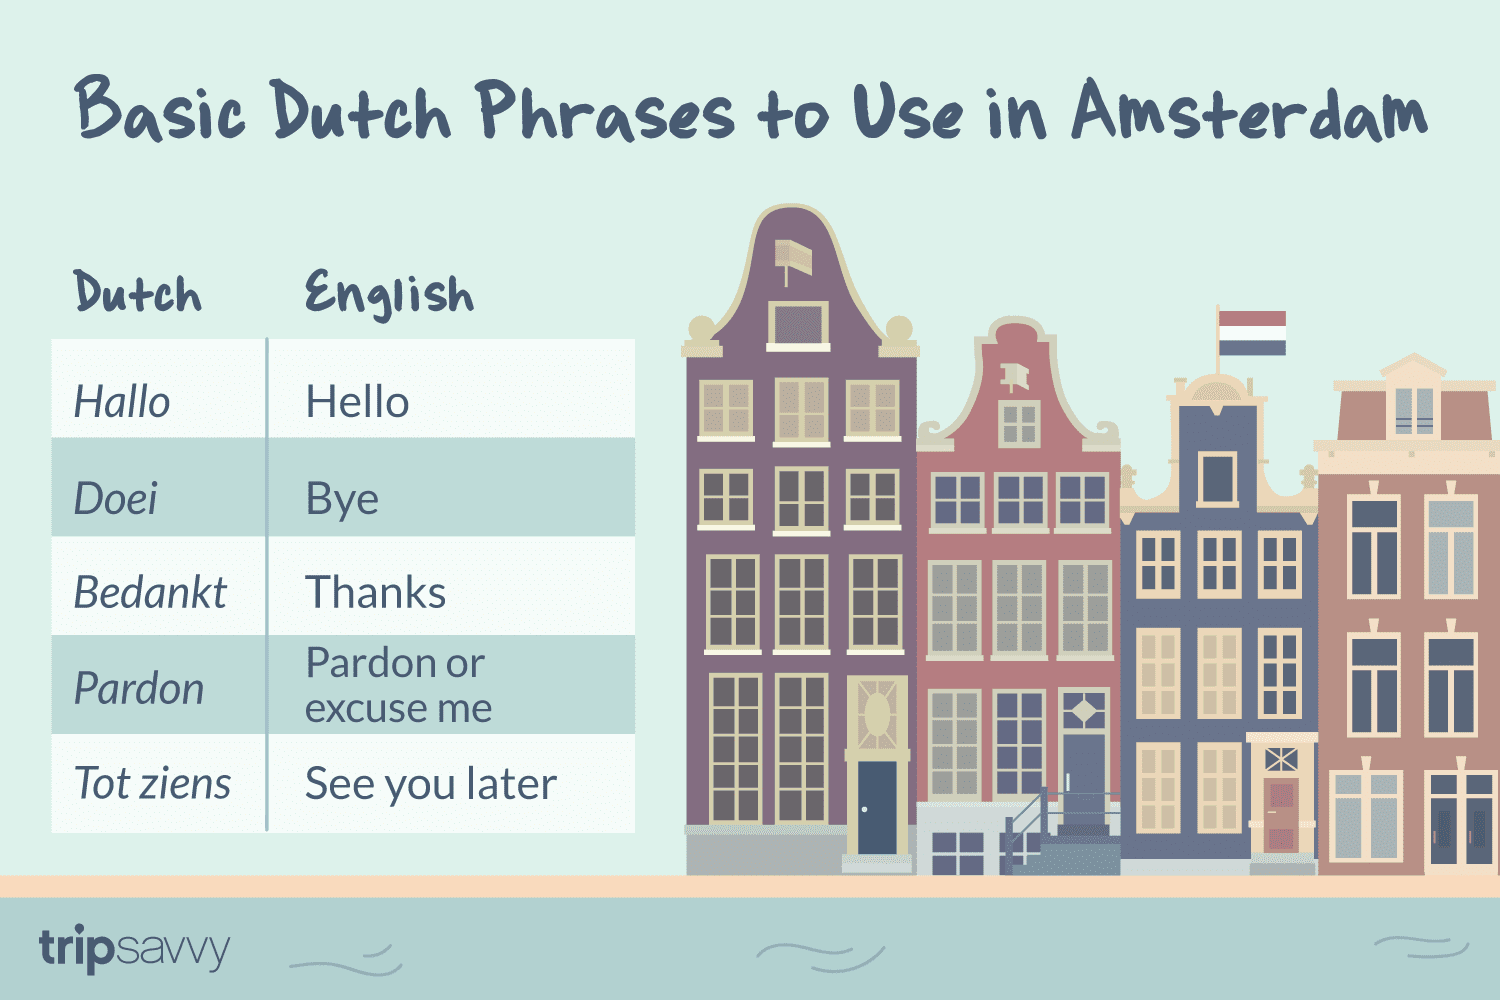 Basic dutch phrases to use in amsterdam basic dutch greetings in amsterdam 1456764 final 5bc74da2c9e77c0051bab650g m4hsunfo